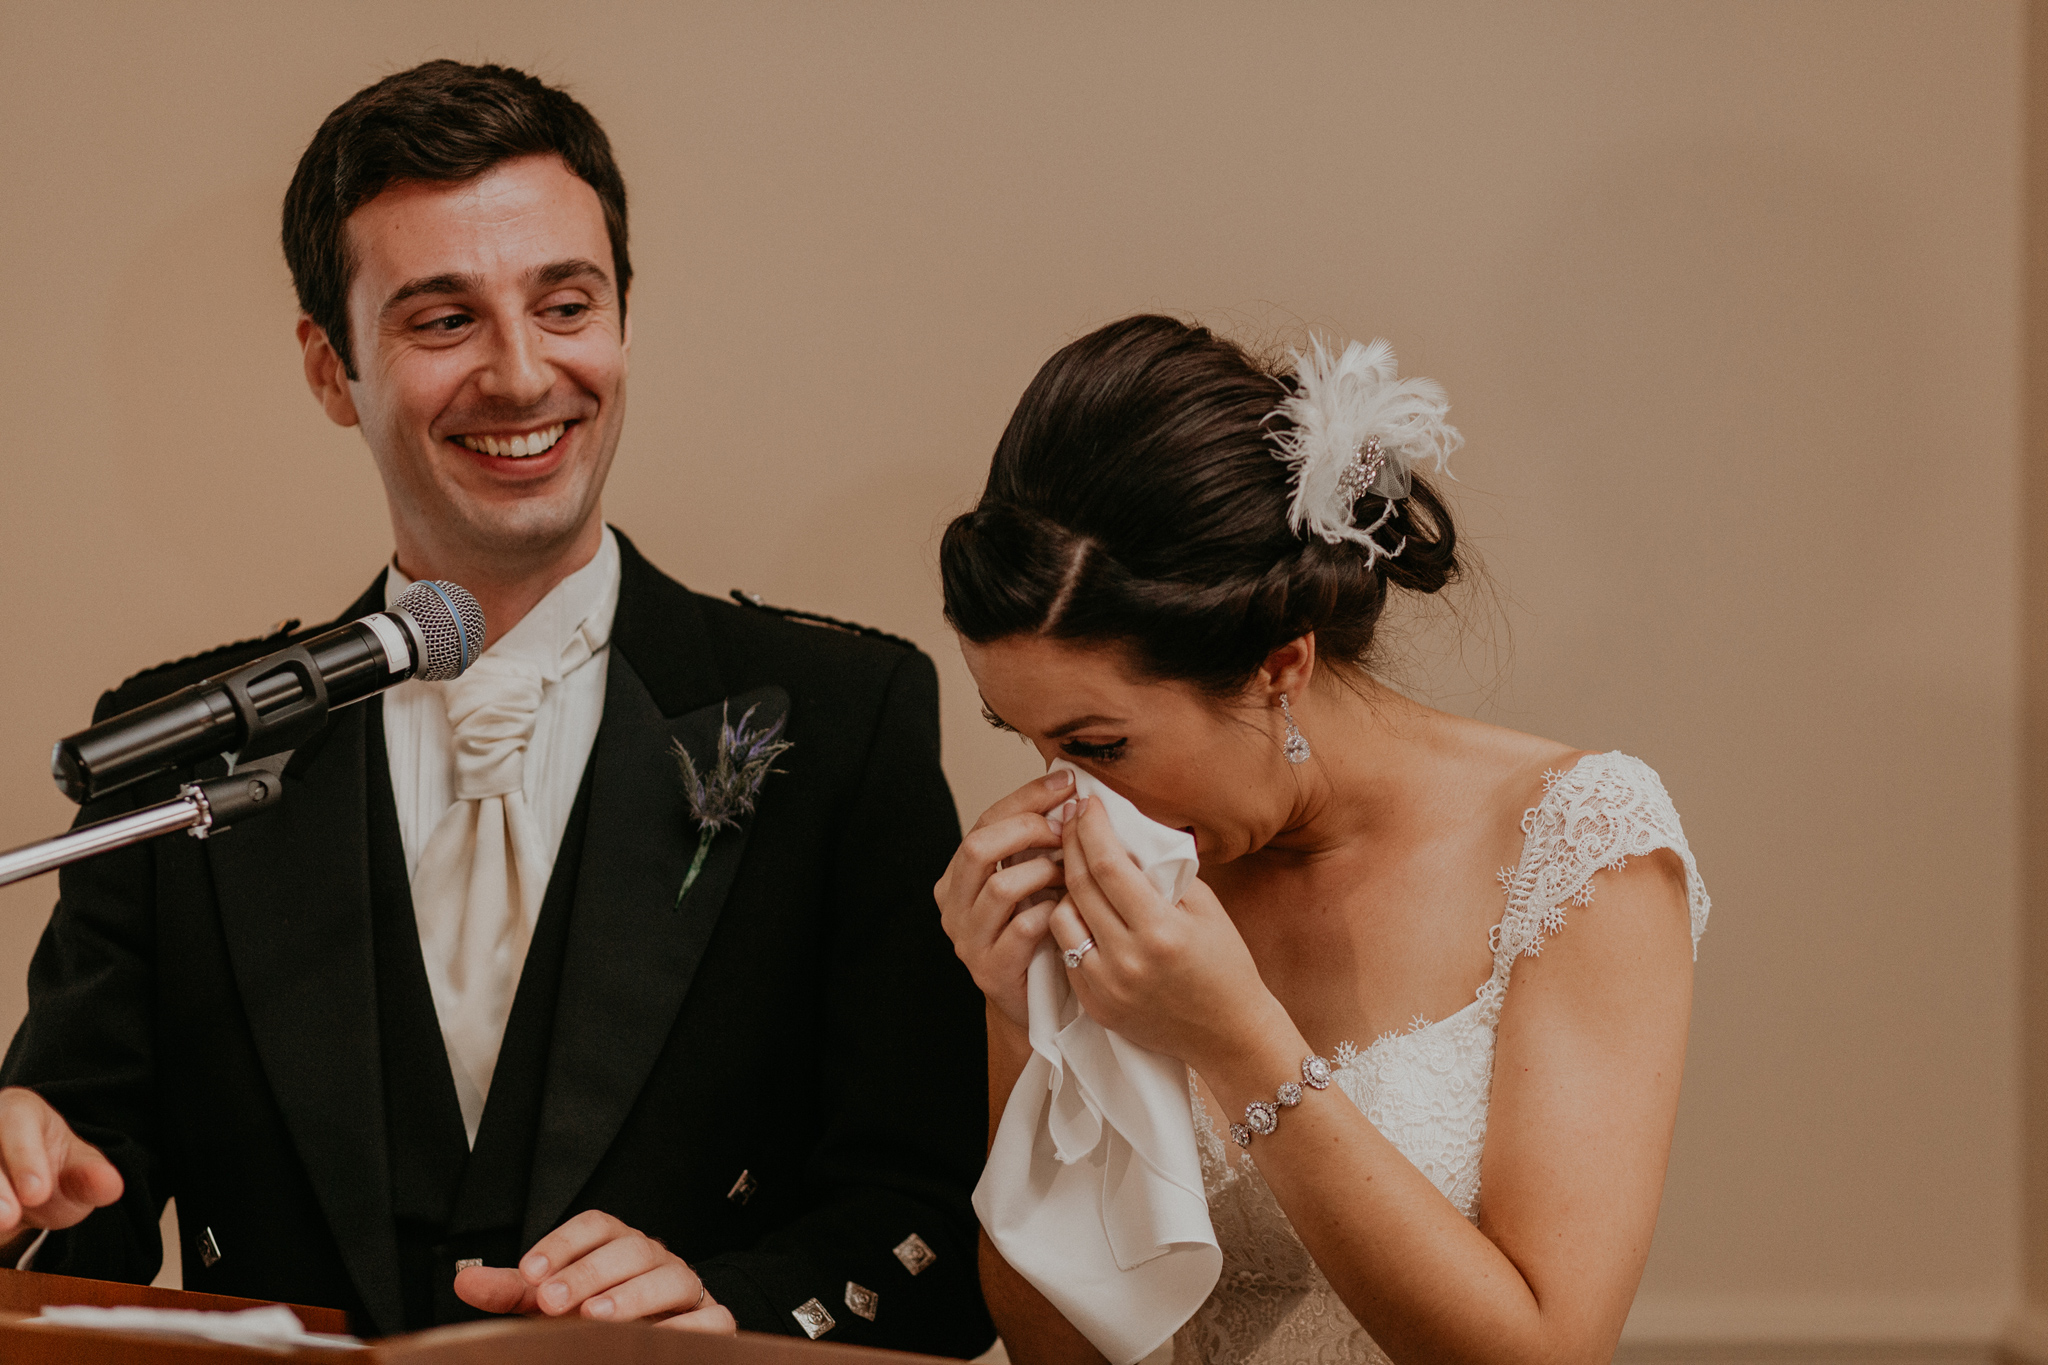 Bride wipes tears from eyes during wedding speech